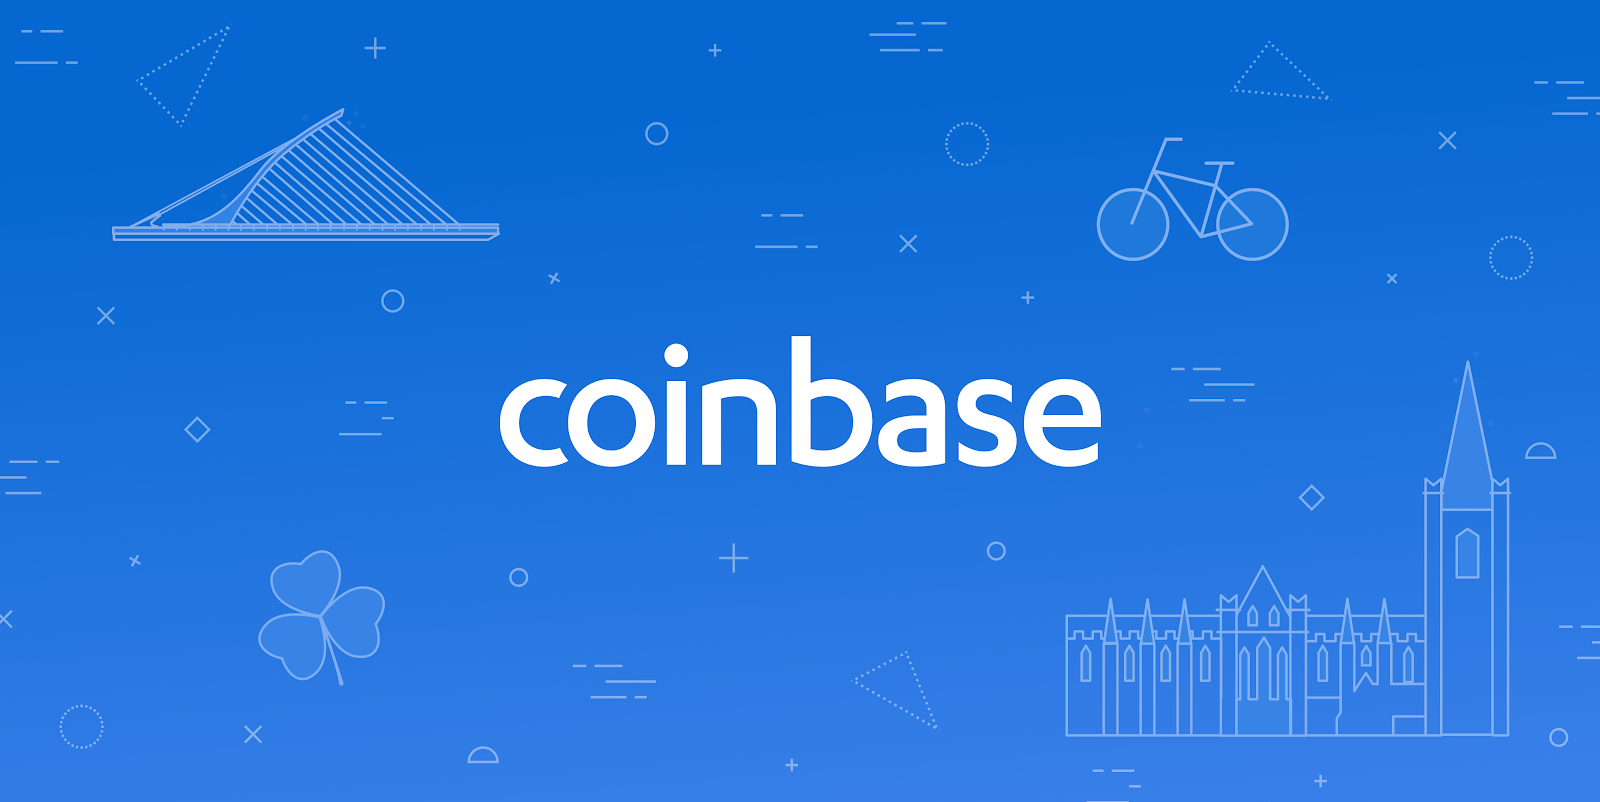 Coinbase expands with new Dublin office